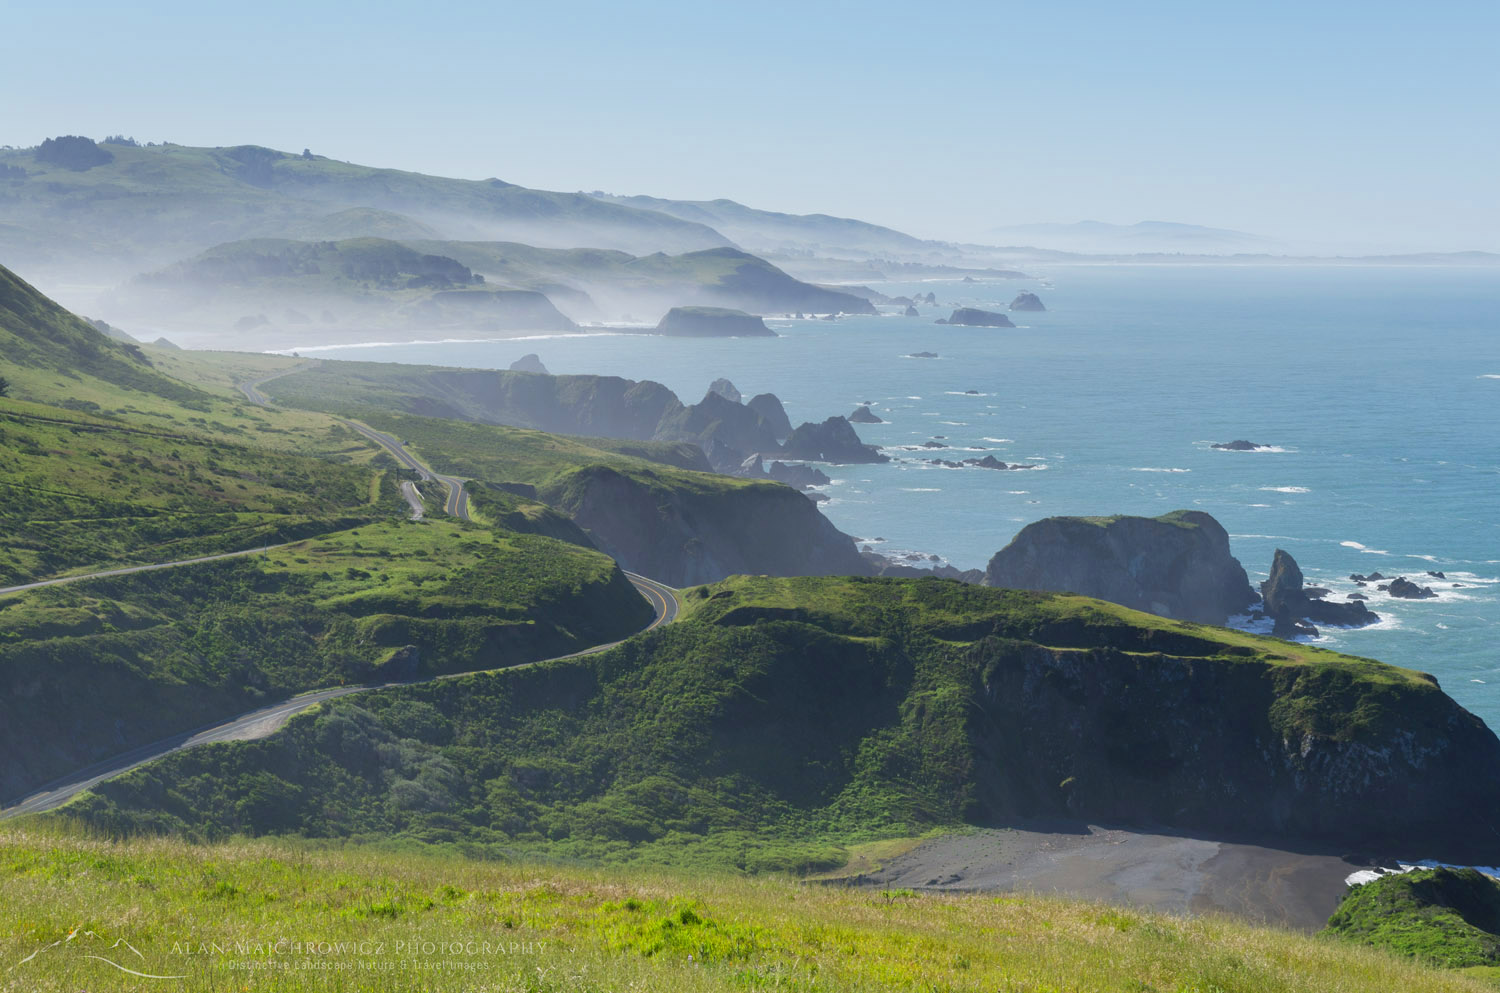 California Highway 1 Sonoma Coast